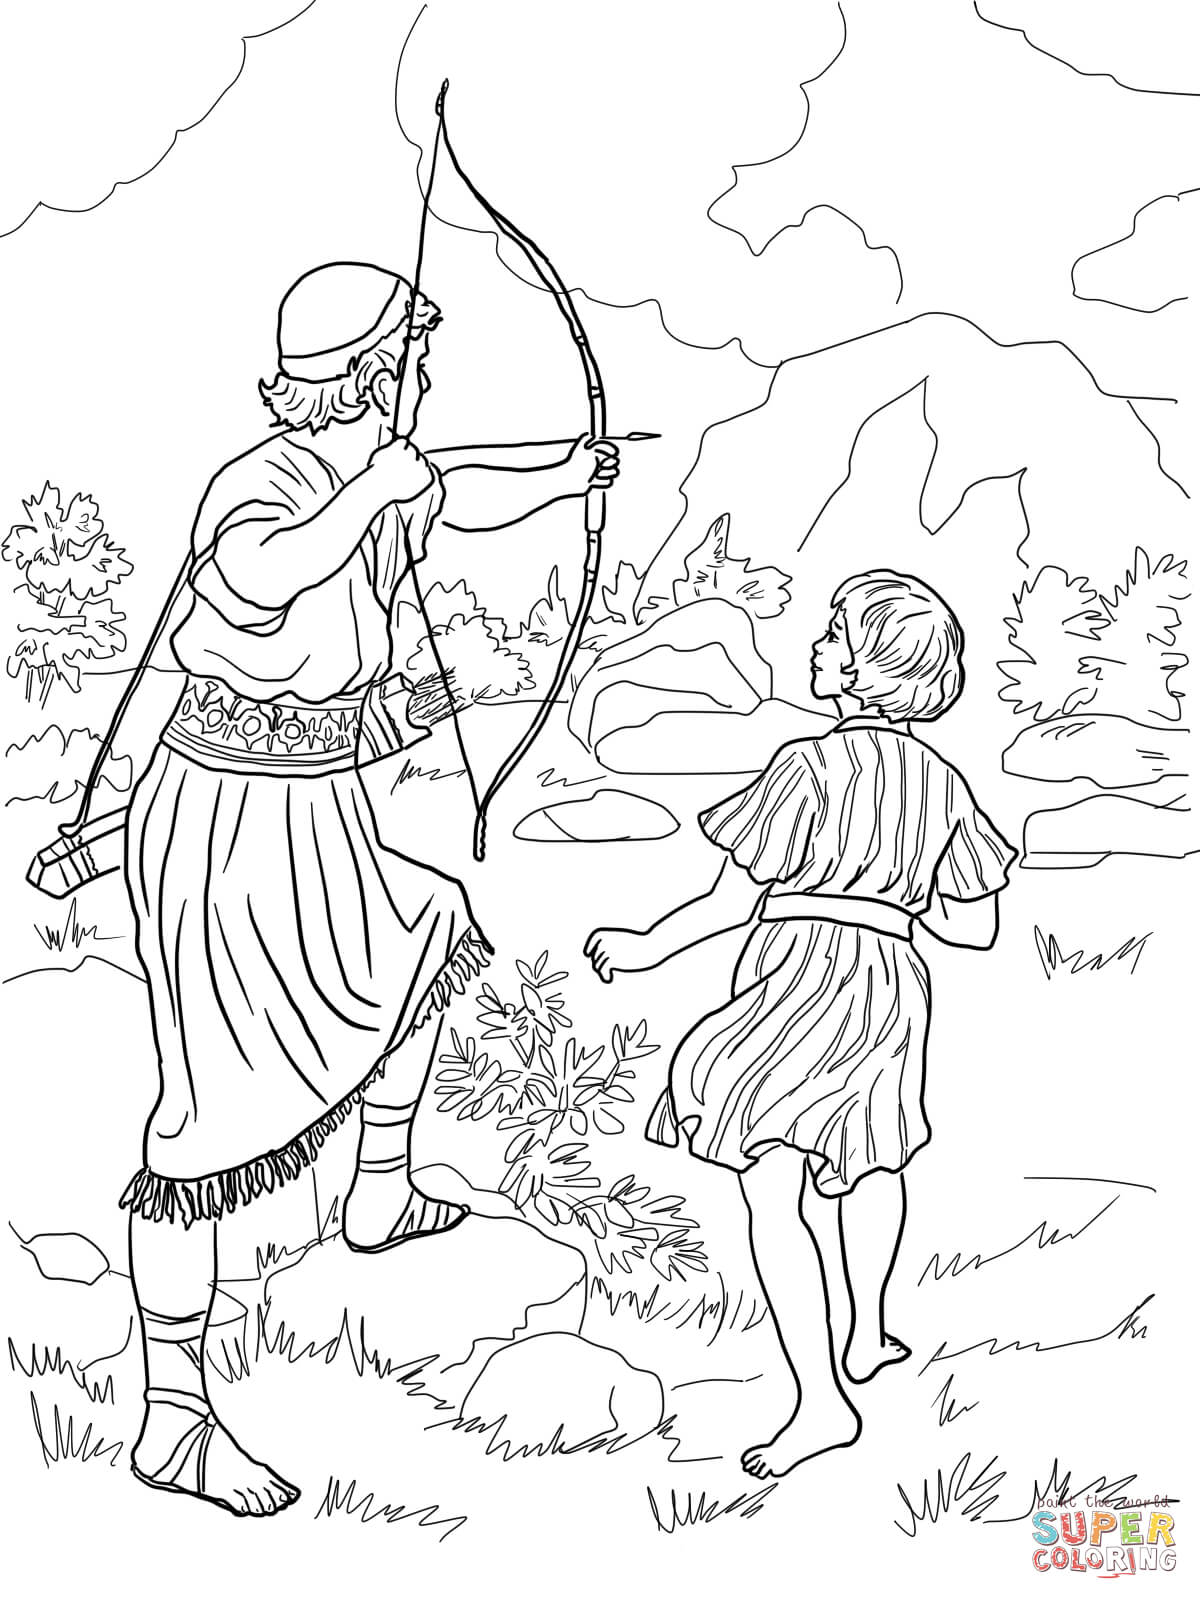 1000+ images about Christian Coloring Pages-OT on Pinterest